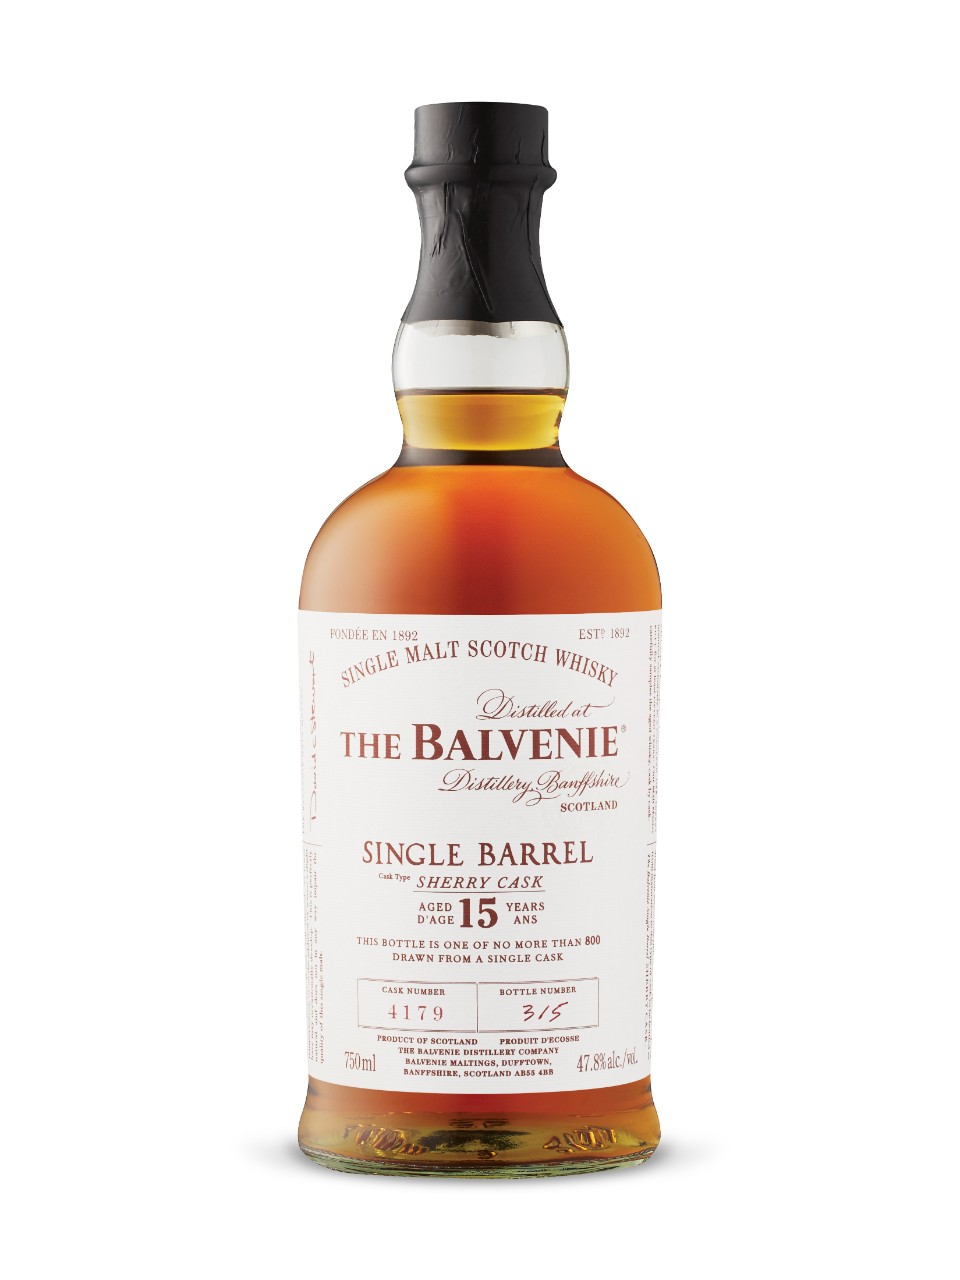 The Balvenie 15-Year-Old Single Barrel Speyside Single Malt Scotch Whisky